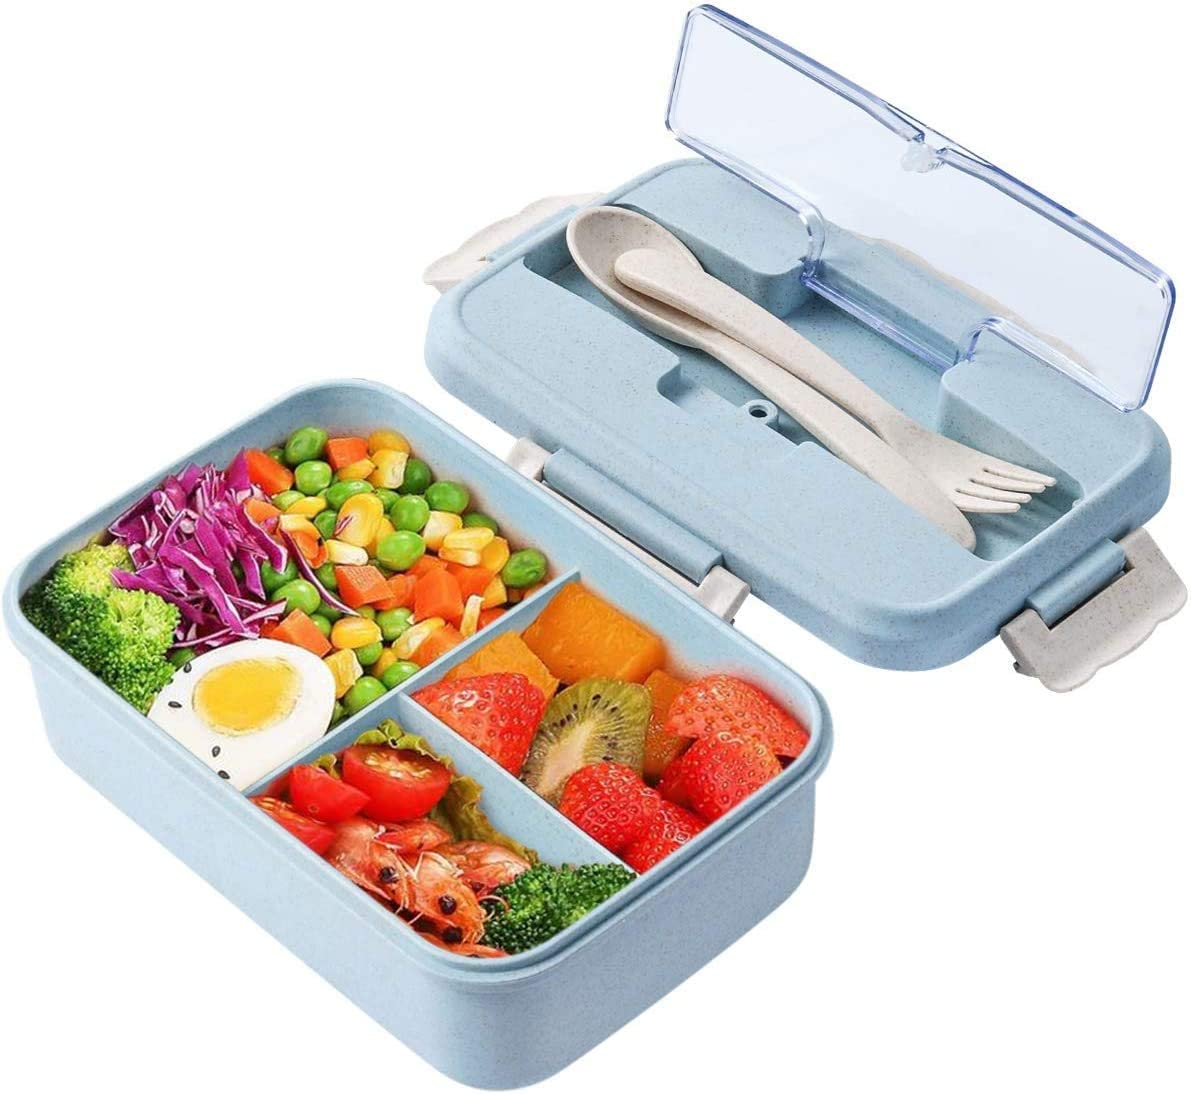 Lunch Box, 3 Compartment Sealed Bento Box and Cutlery Set Lunch Boxes for Kid Adult Work School, Suitable for Microwave and Dishwasher (Blue)